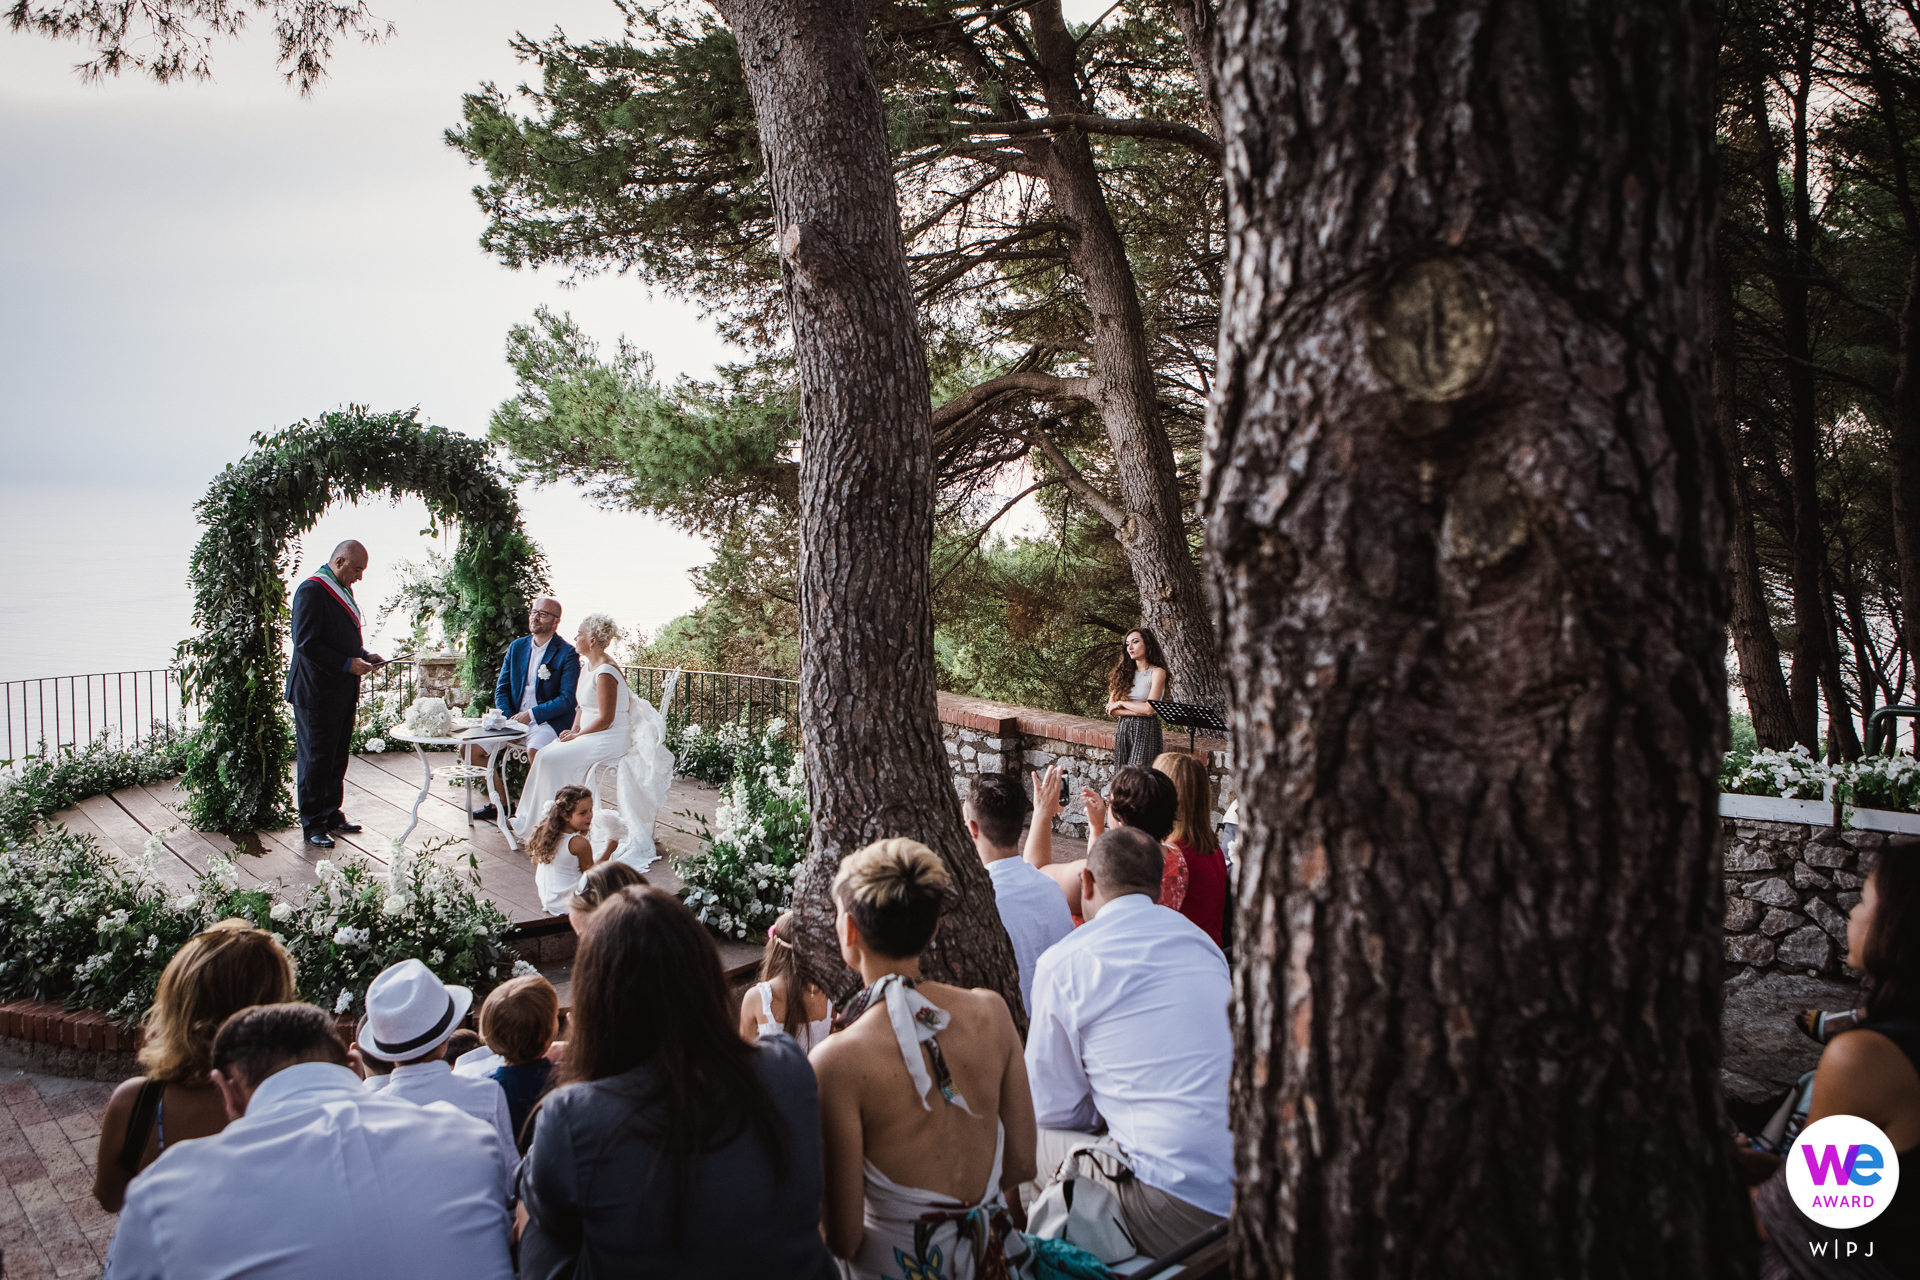 Capri Island - Italy Elopement Photographer | This is the kind of poetry the couple saw in Gelsomina to Anacapri